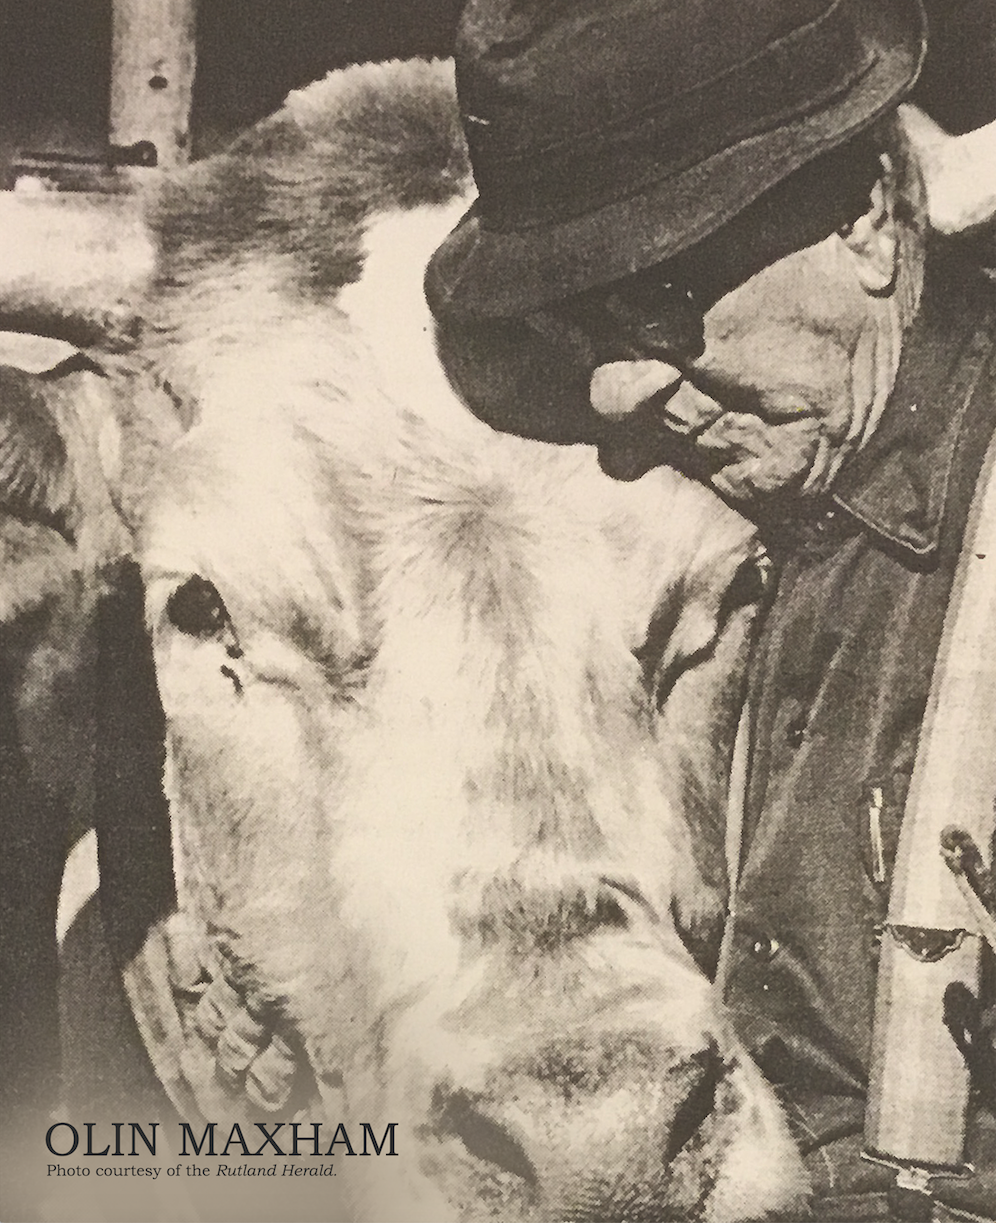 Olin Maxham and one of his oxen